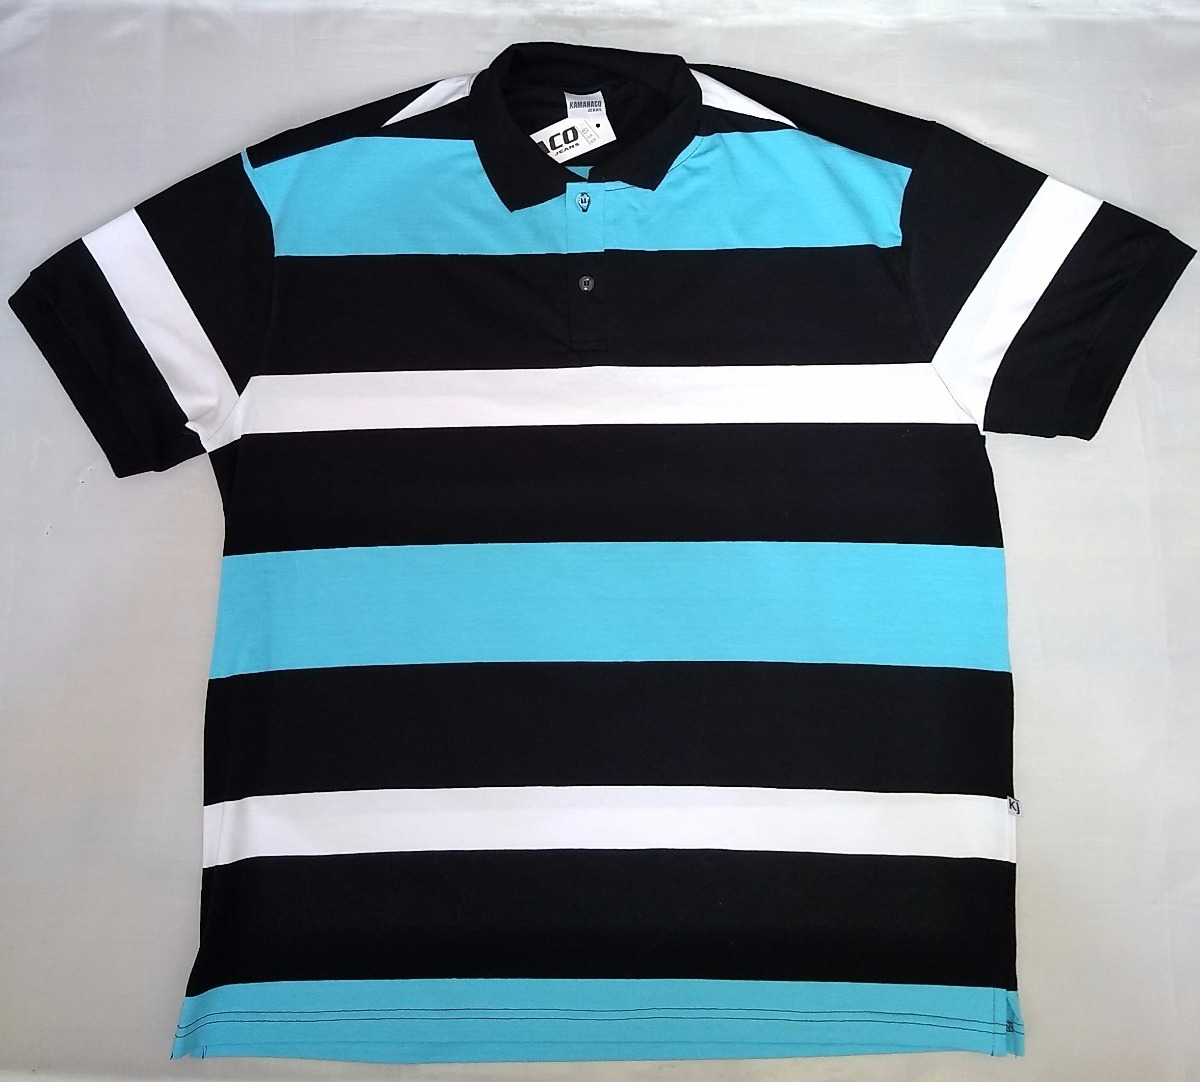 camisa polo listrada plus size azul. Carregando zoom. 1dad75edf8270